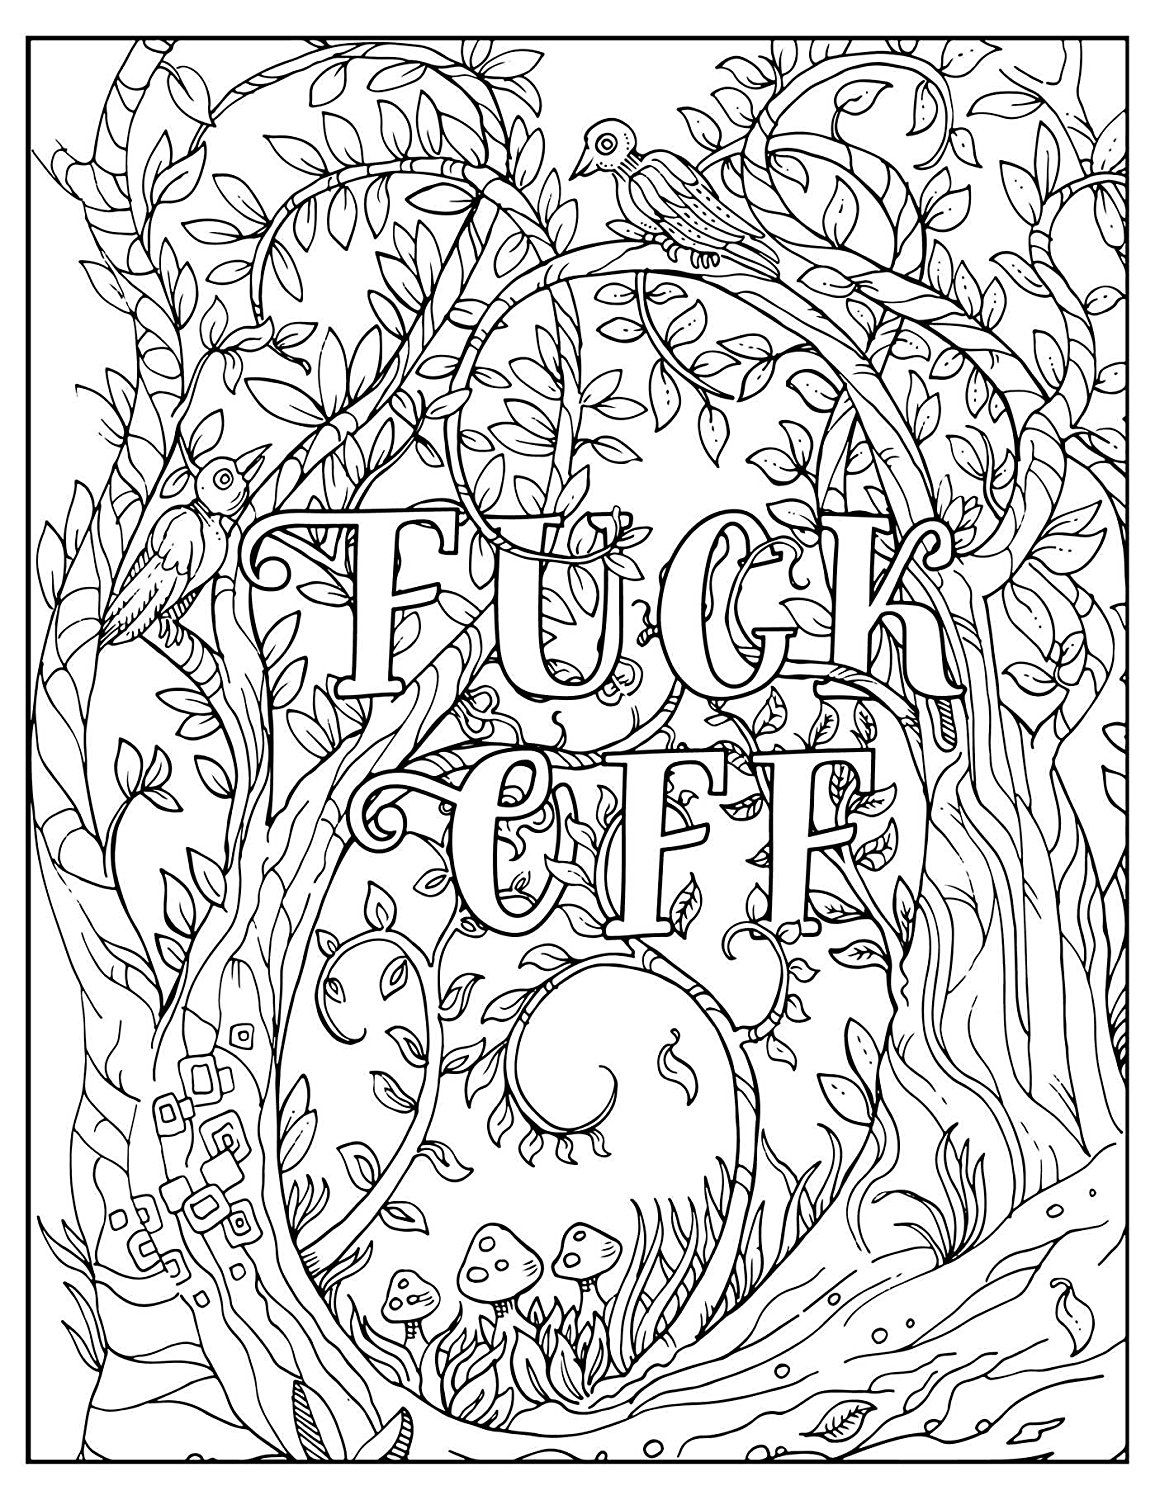 1155x1500 Amazing Free Printable Coloring Pages For Adults Only Swear Words